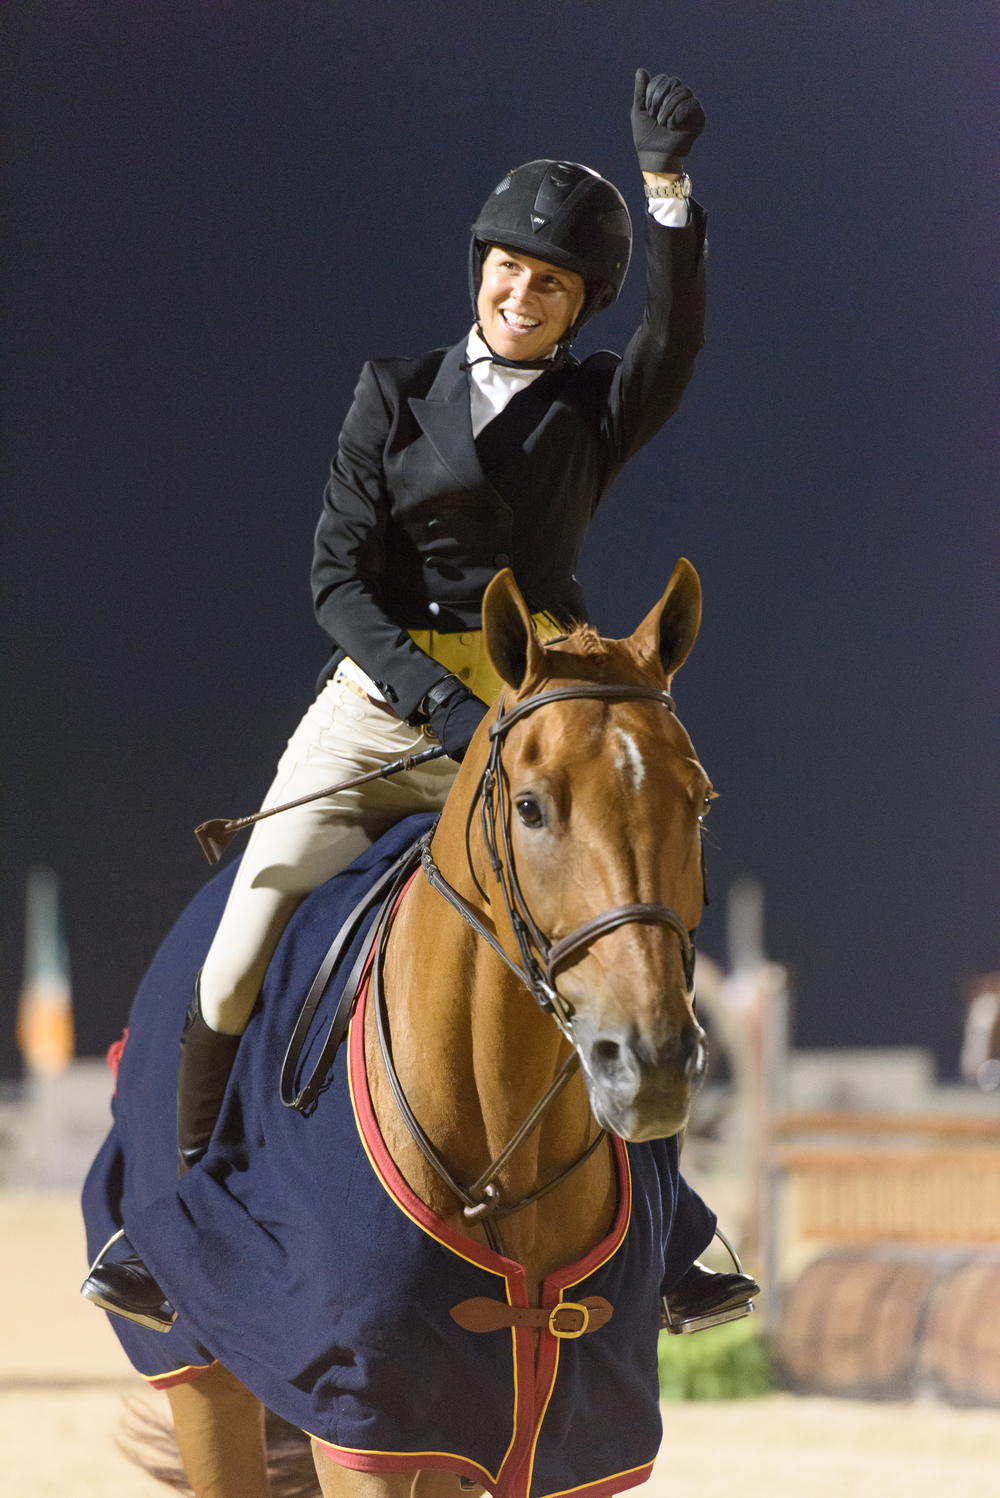 Liza Boyd was invited to compete at this year's Central Park Horse Show